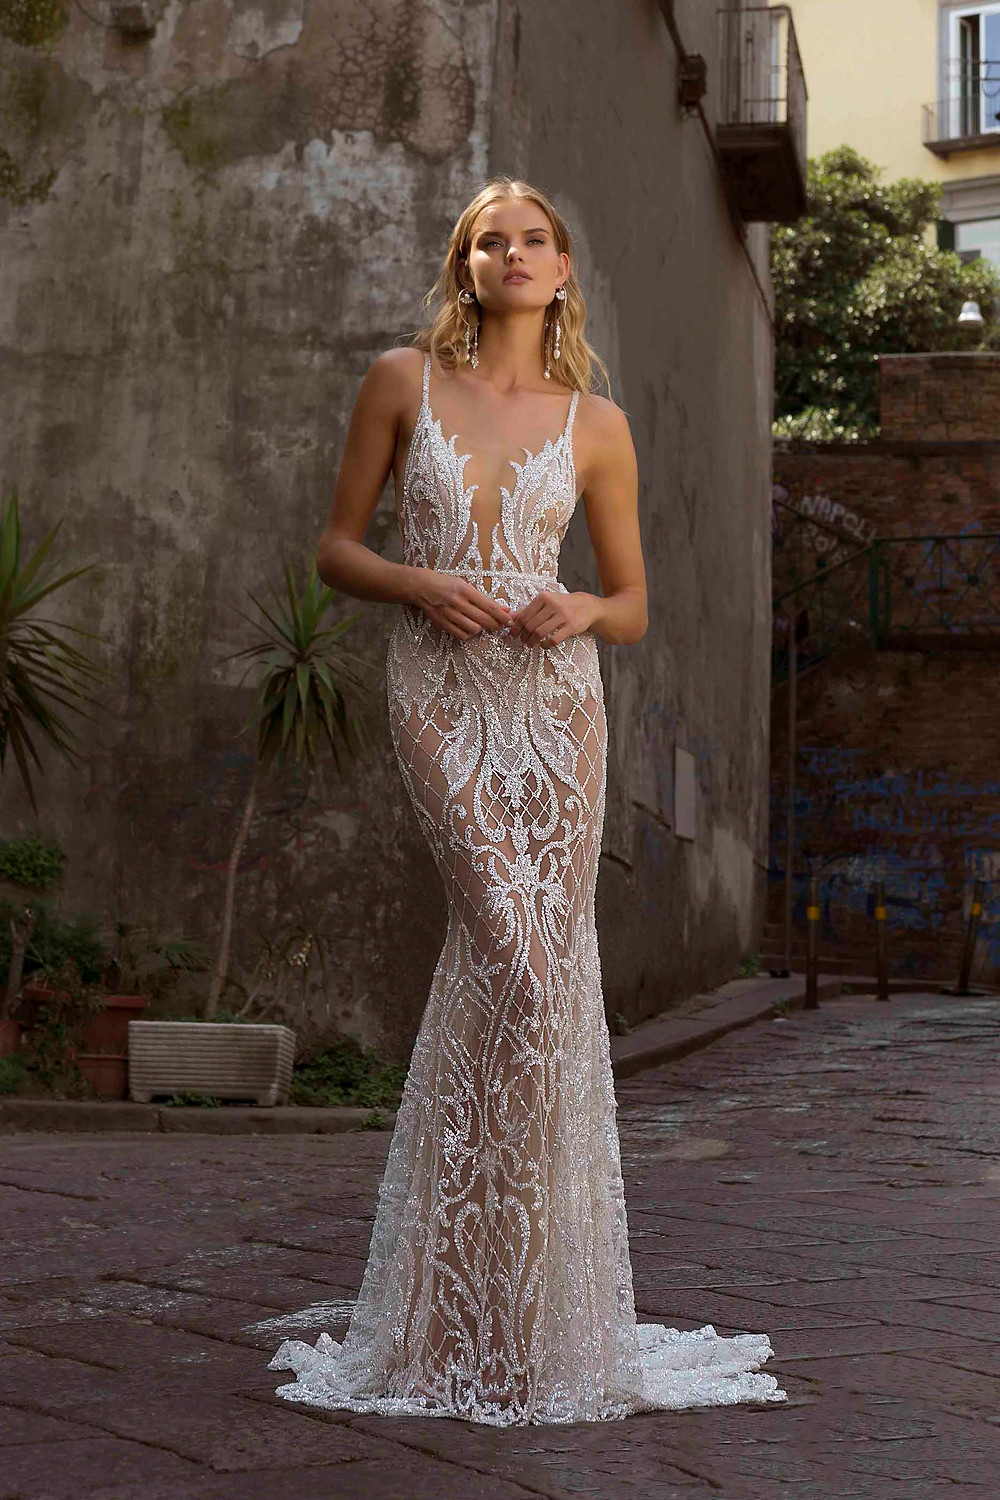 A Berta 2020 sparkly, sexy mermaid wedding dress, with thin straps, low v neckline and crystals